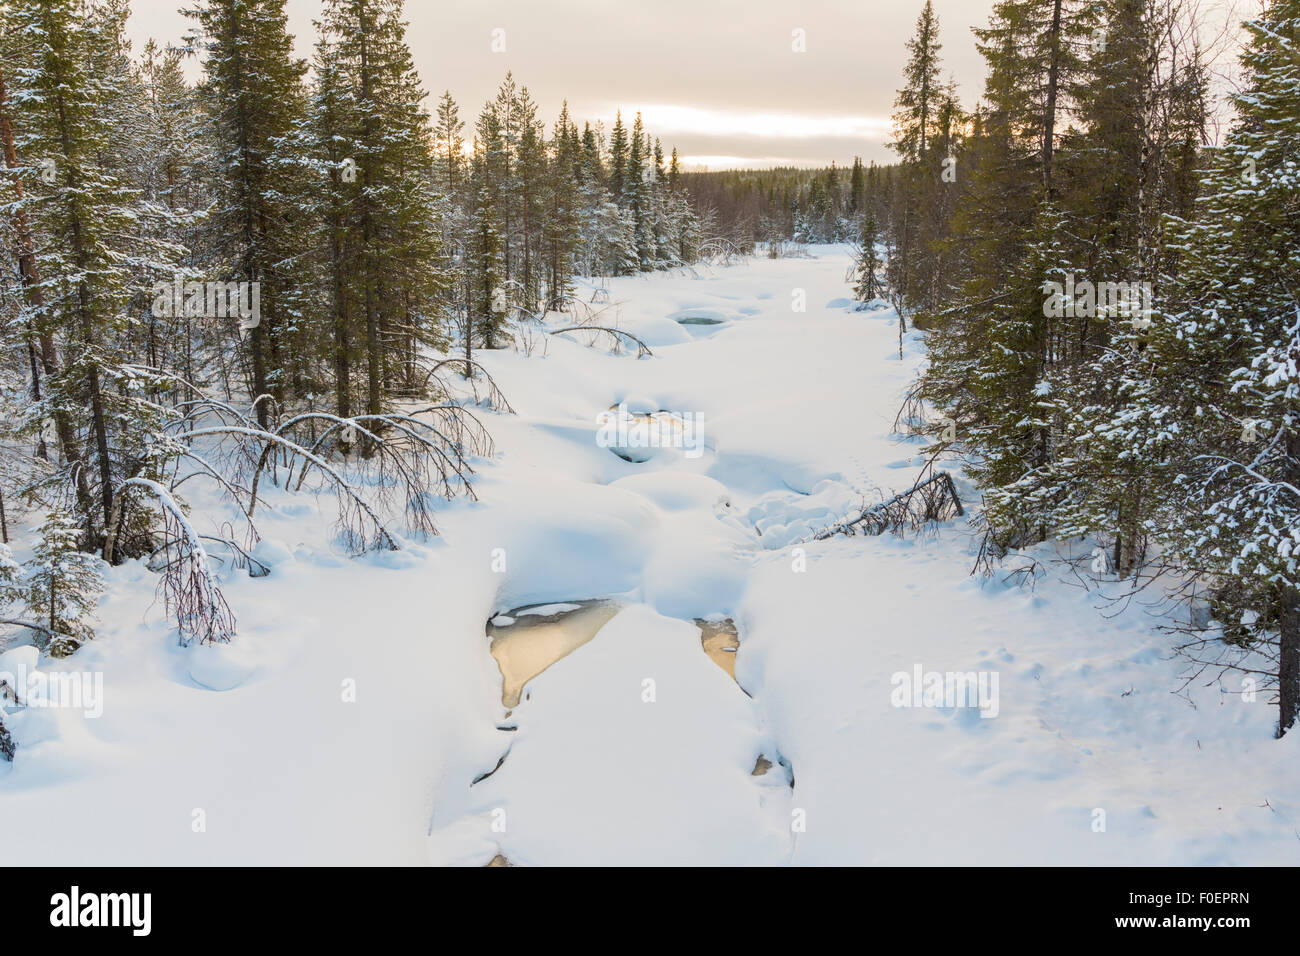 Frozen creek with trees on the side, plenty of snow on the ice, Gällivare, Sweden - Stock Image